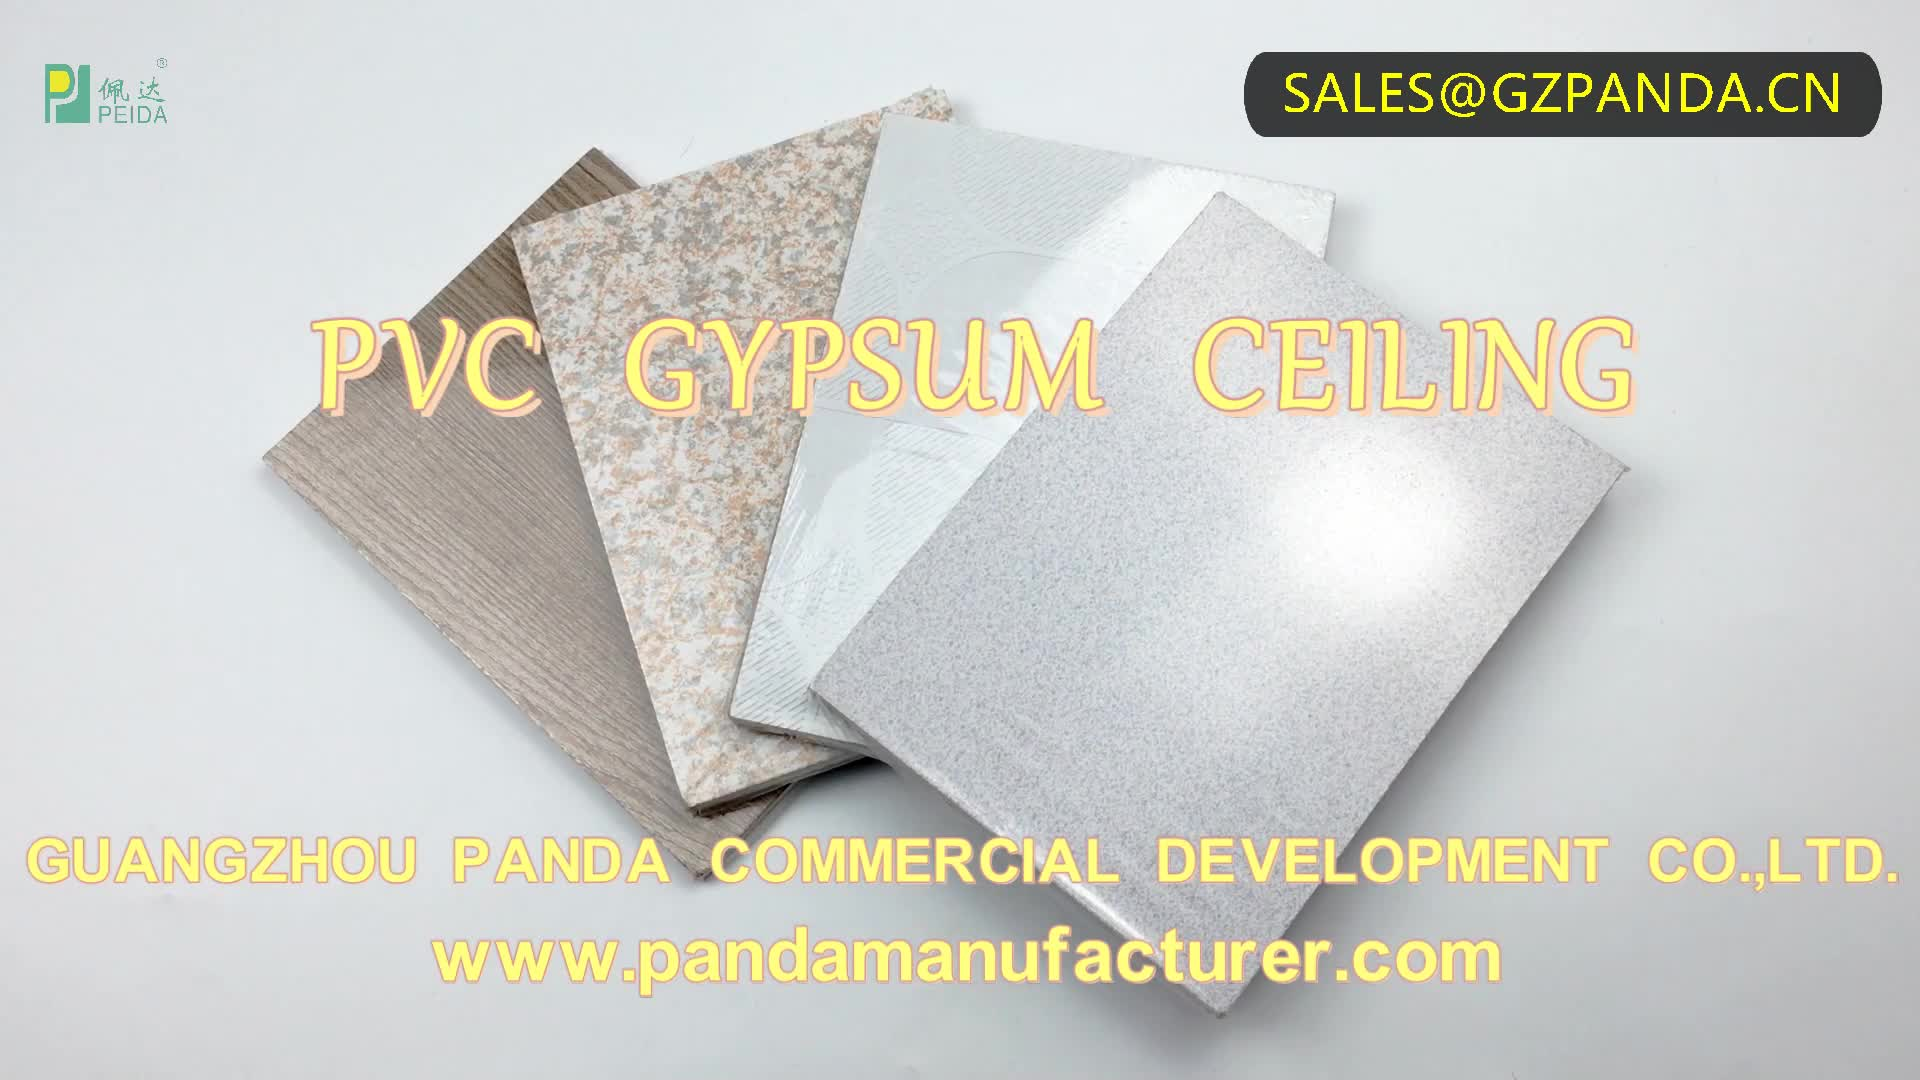 Gypsum Ceiling Tiles 595*595* 8mm/7.0mm Thickness Plaster Ceilings/PVC Gypsum Board Suspended Ceiling Panels